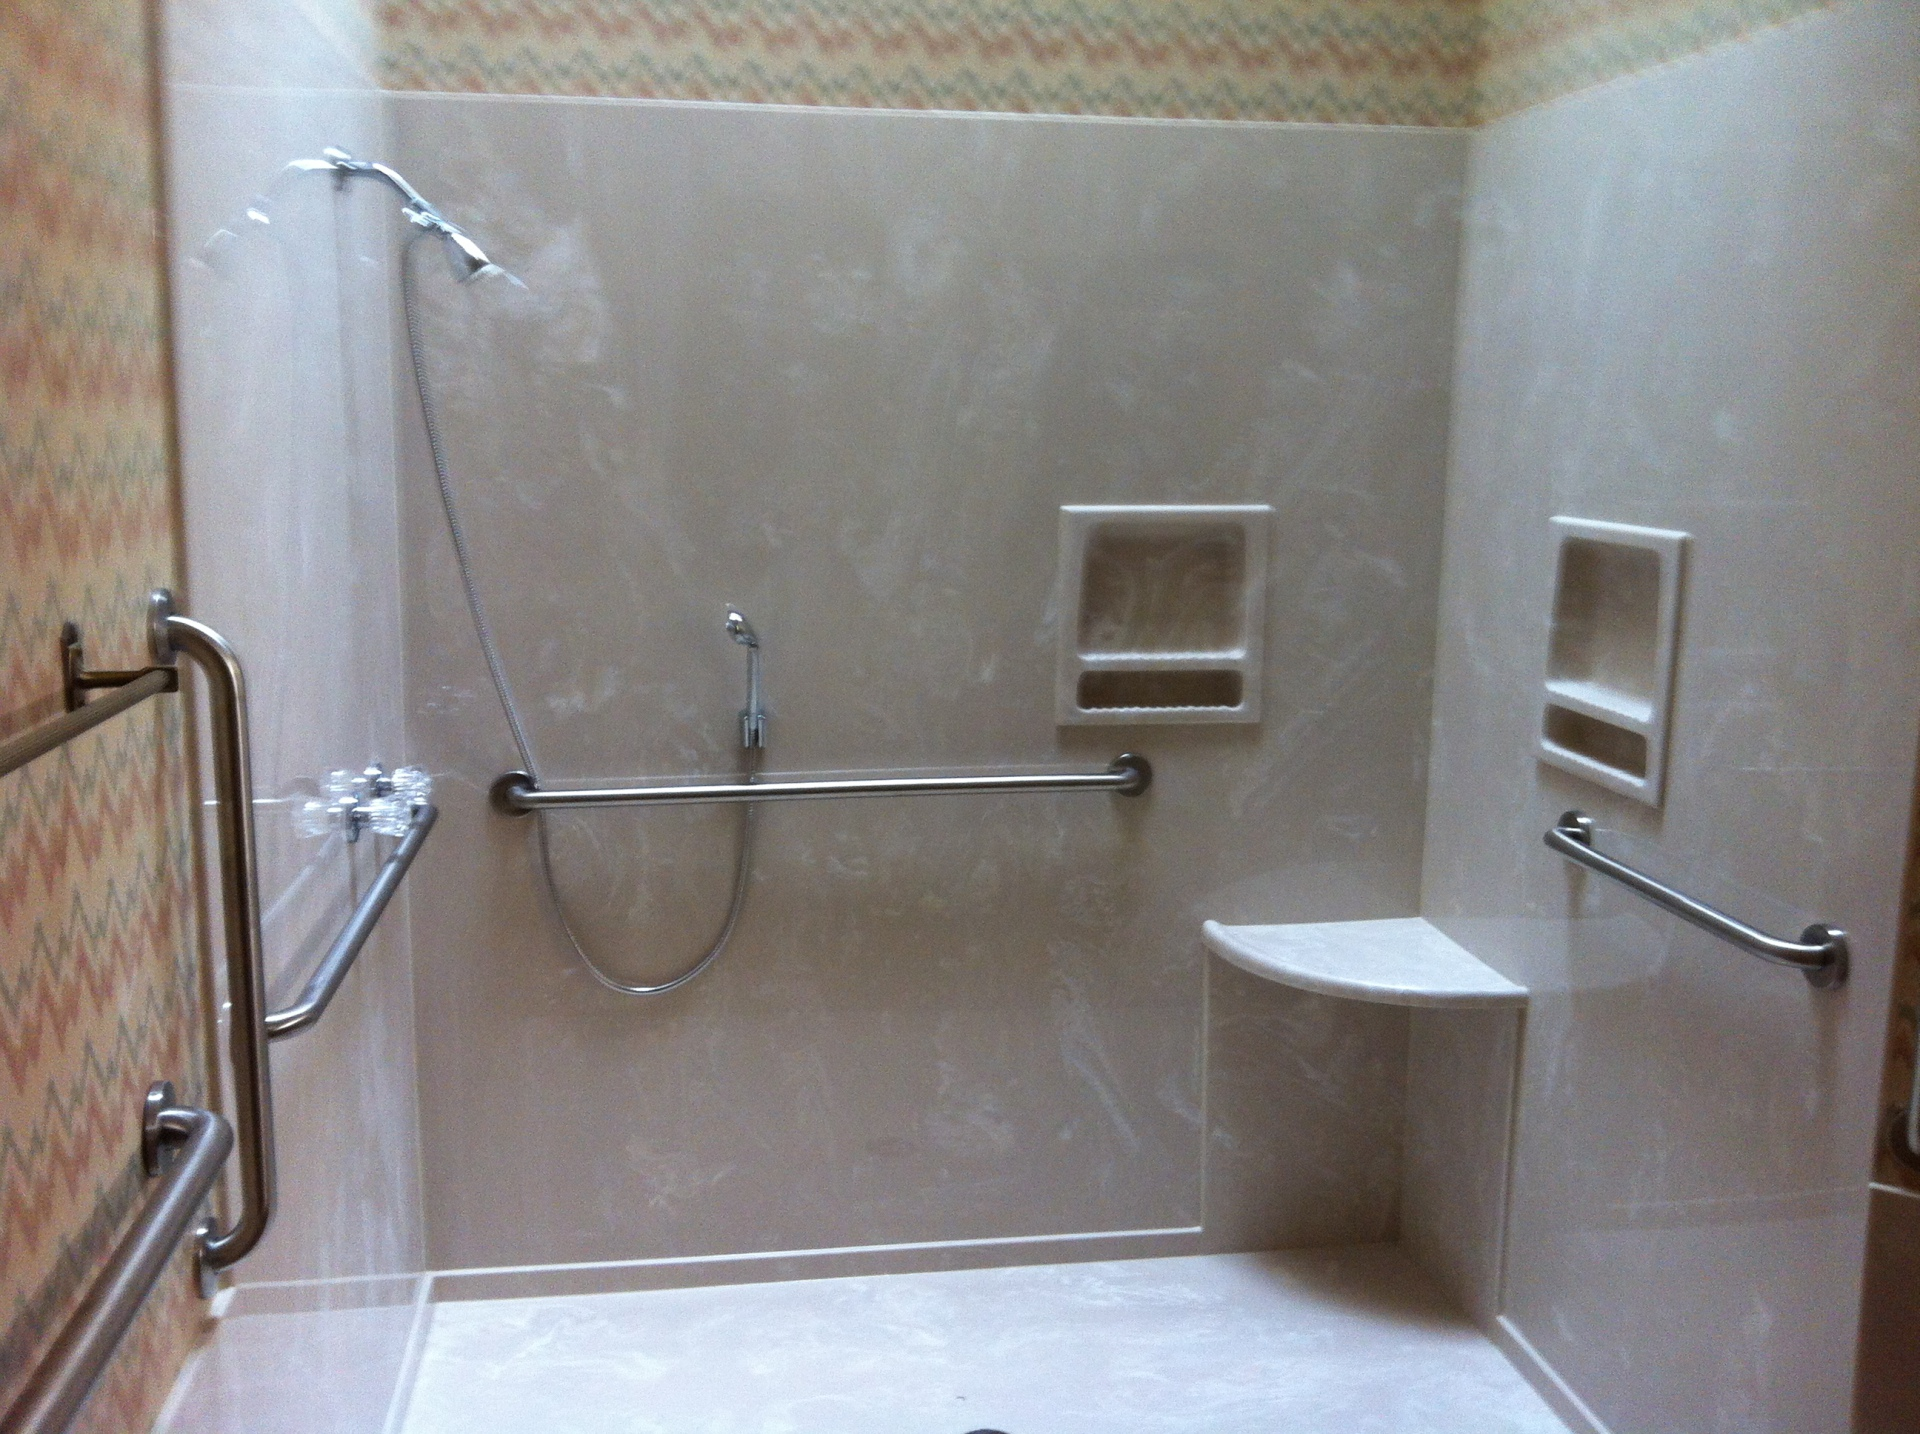 Wheel chair designed shower with all low reach